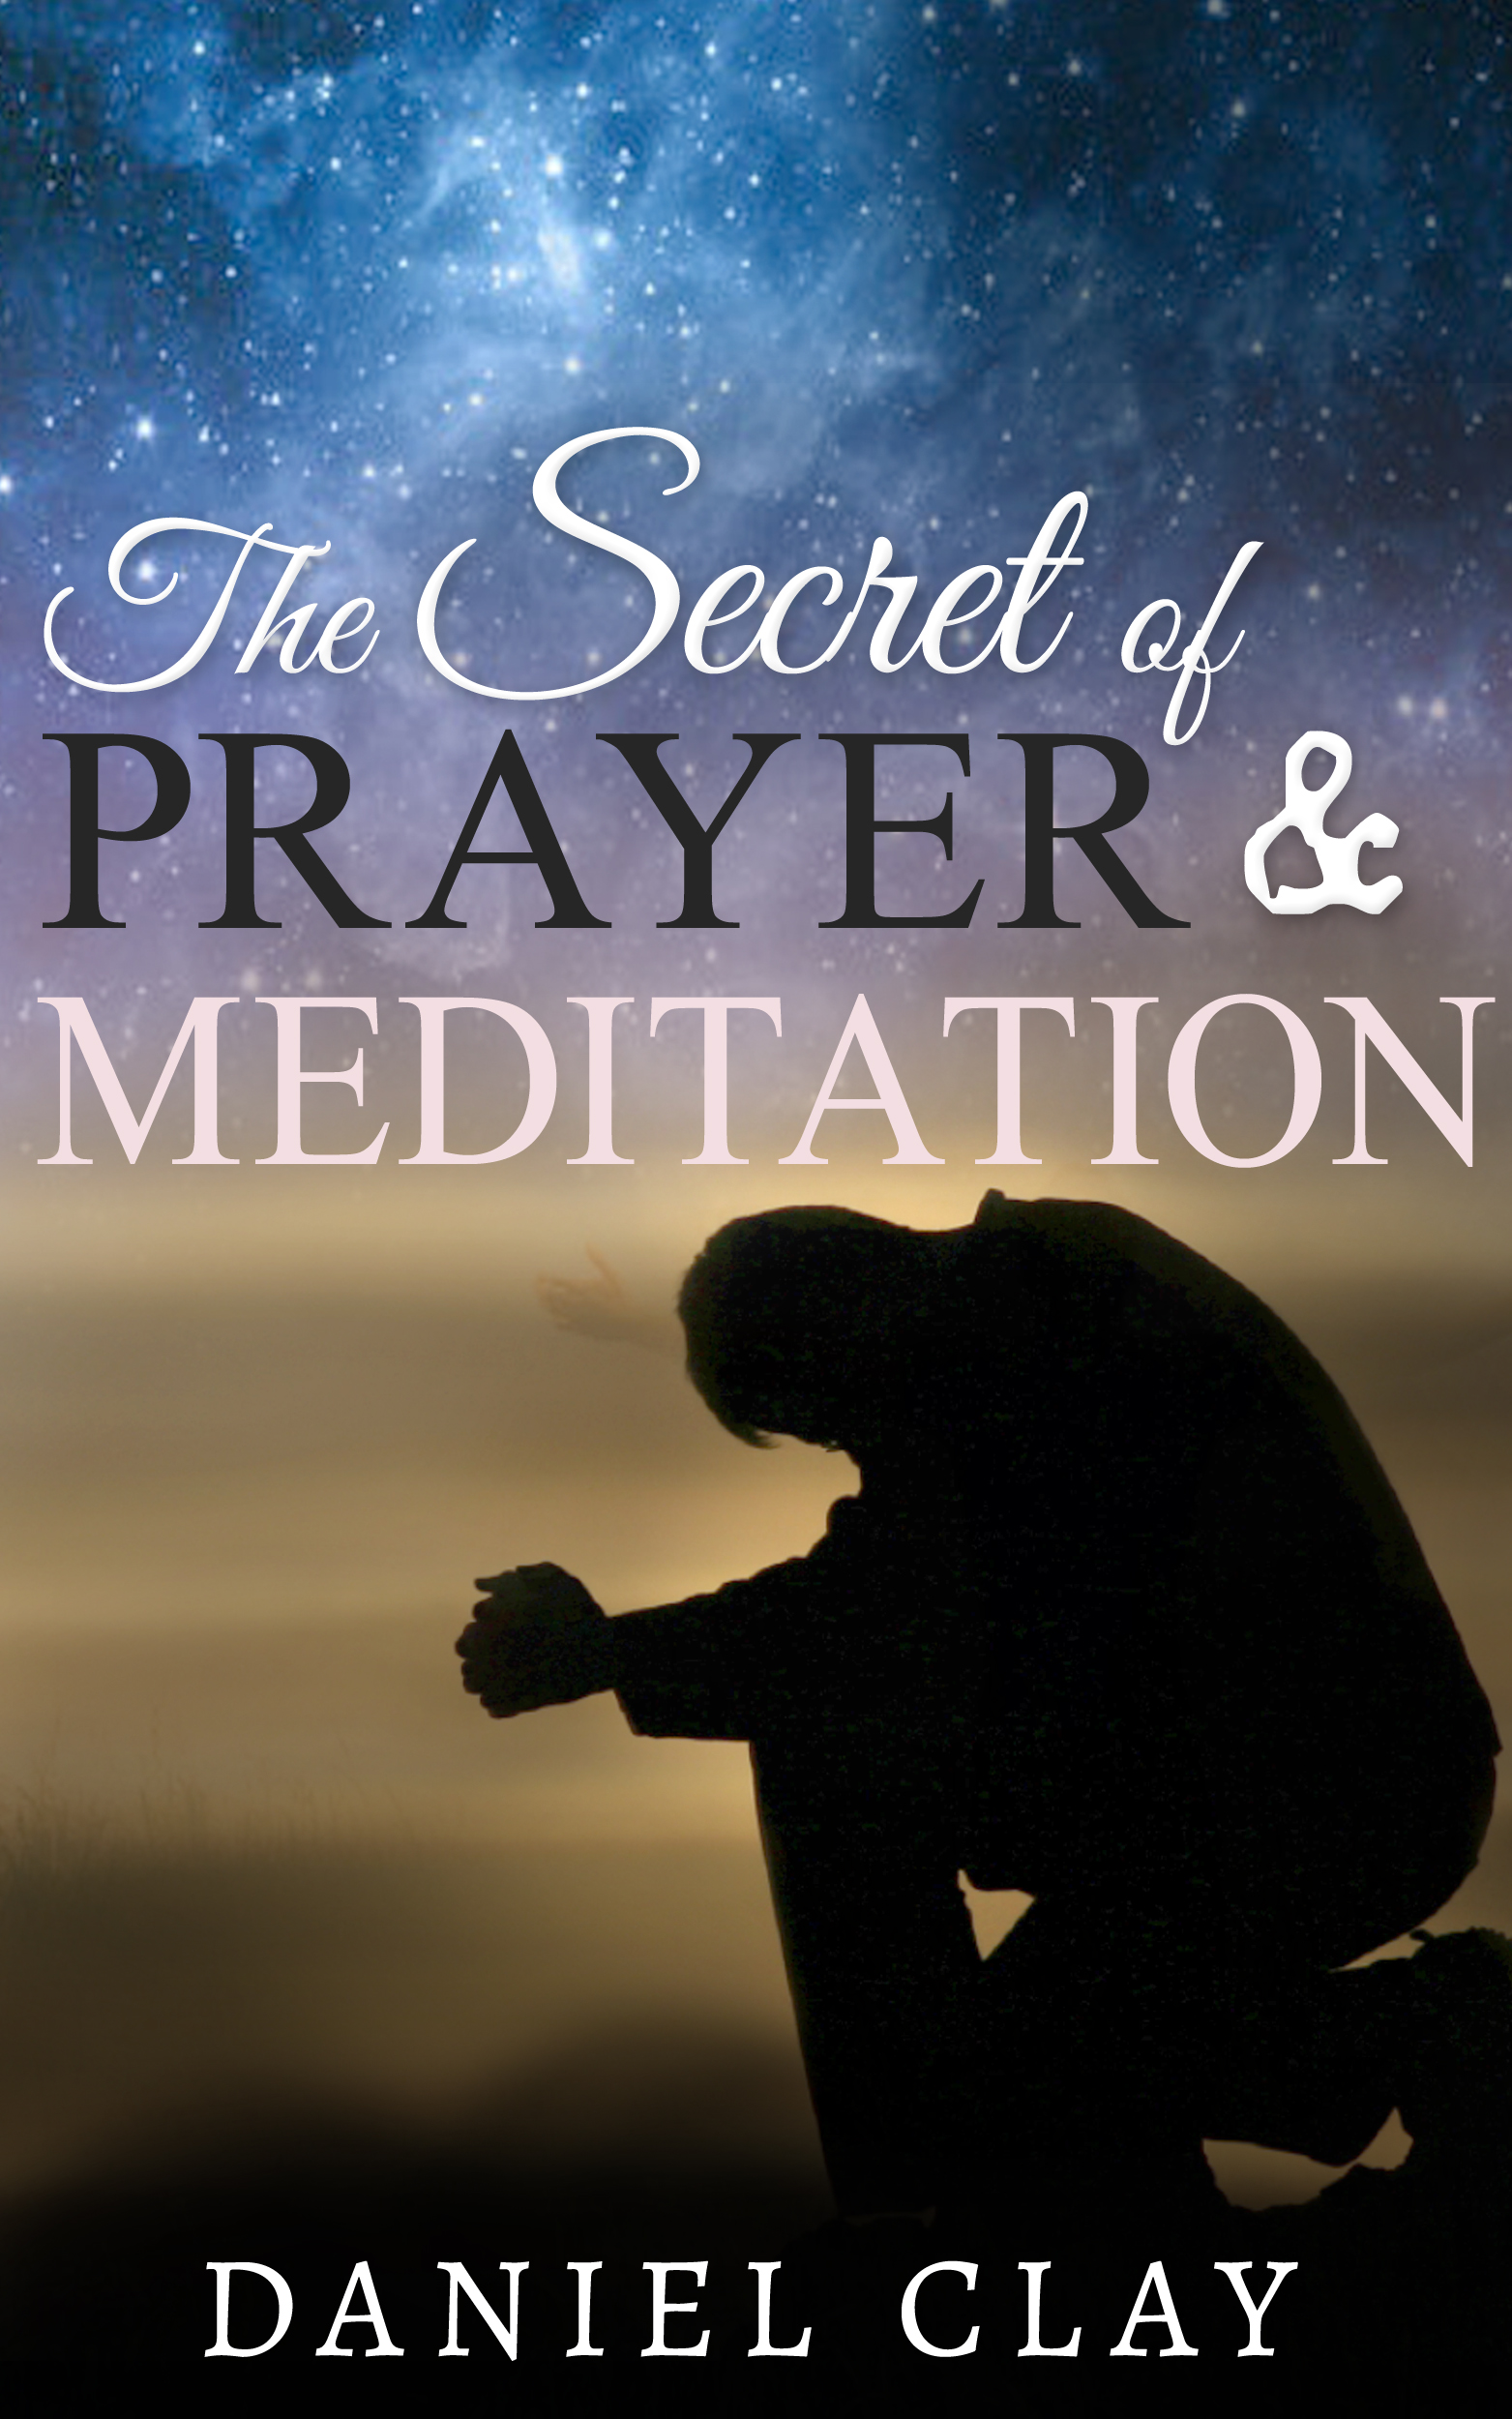 The Secret of Prayer and Meditation